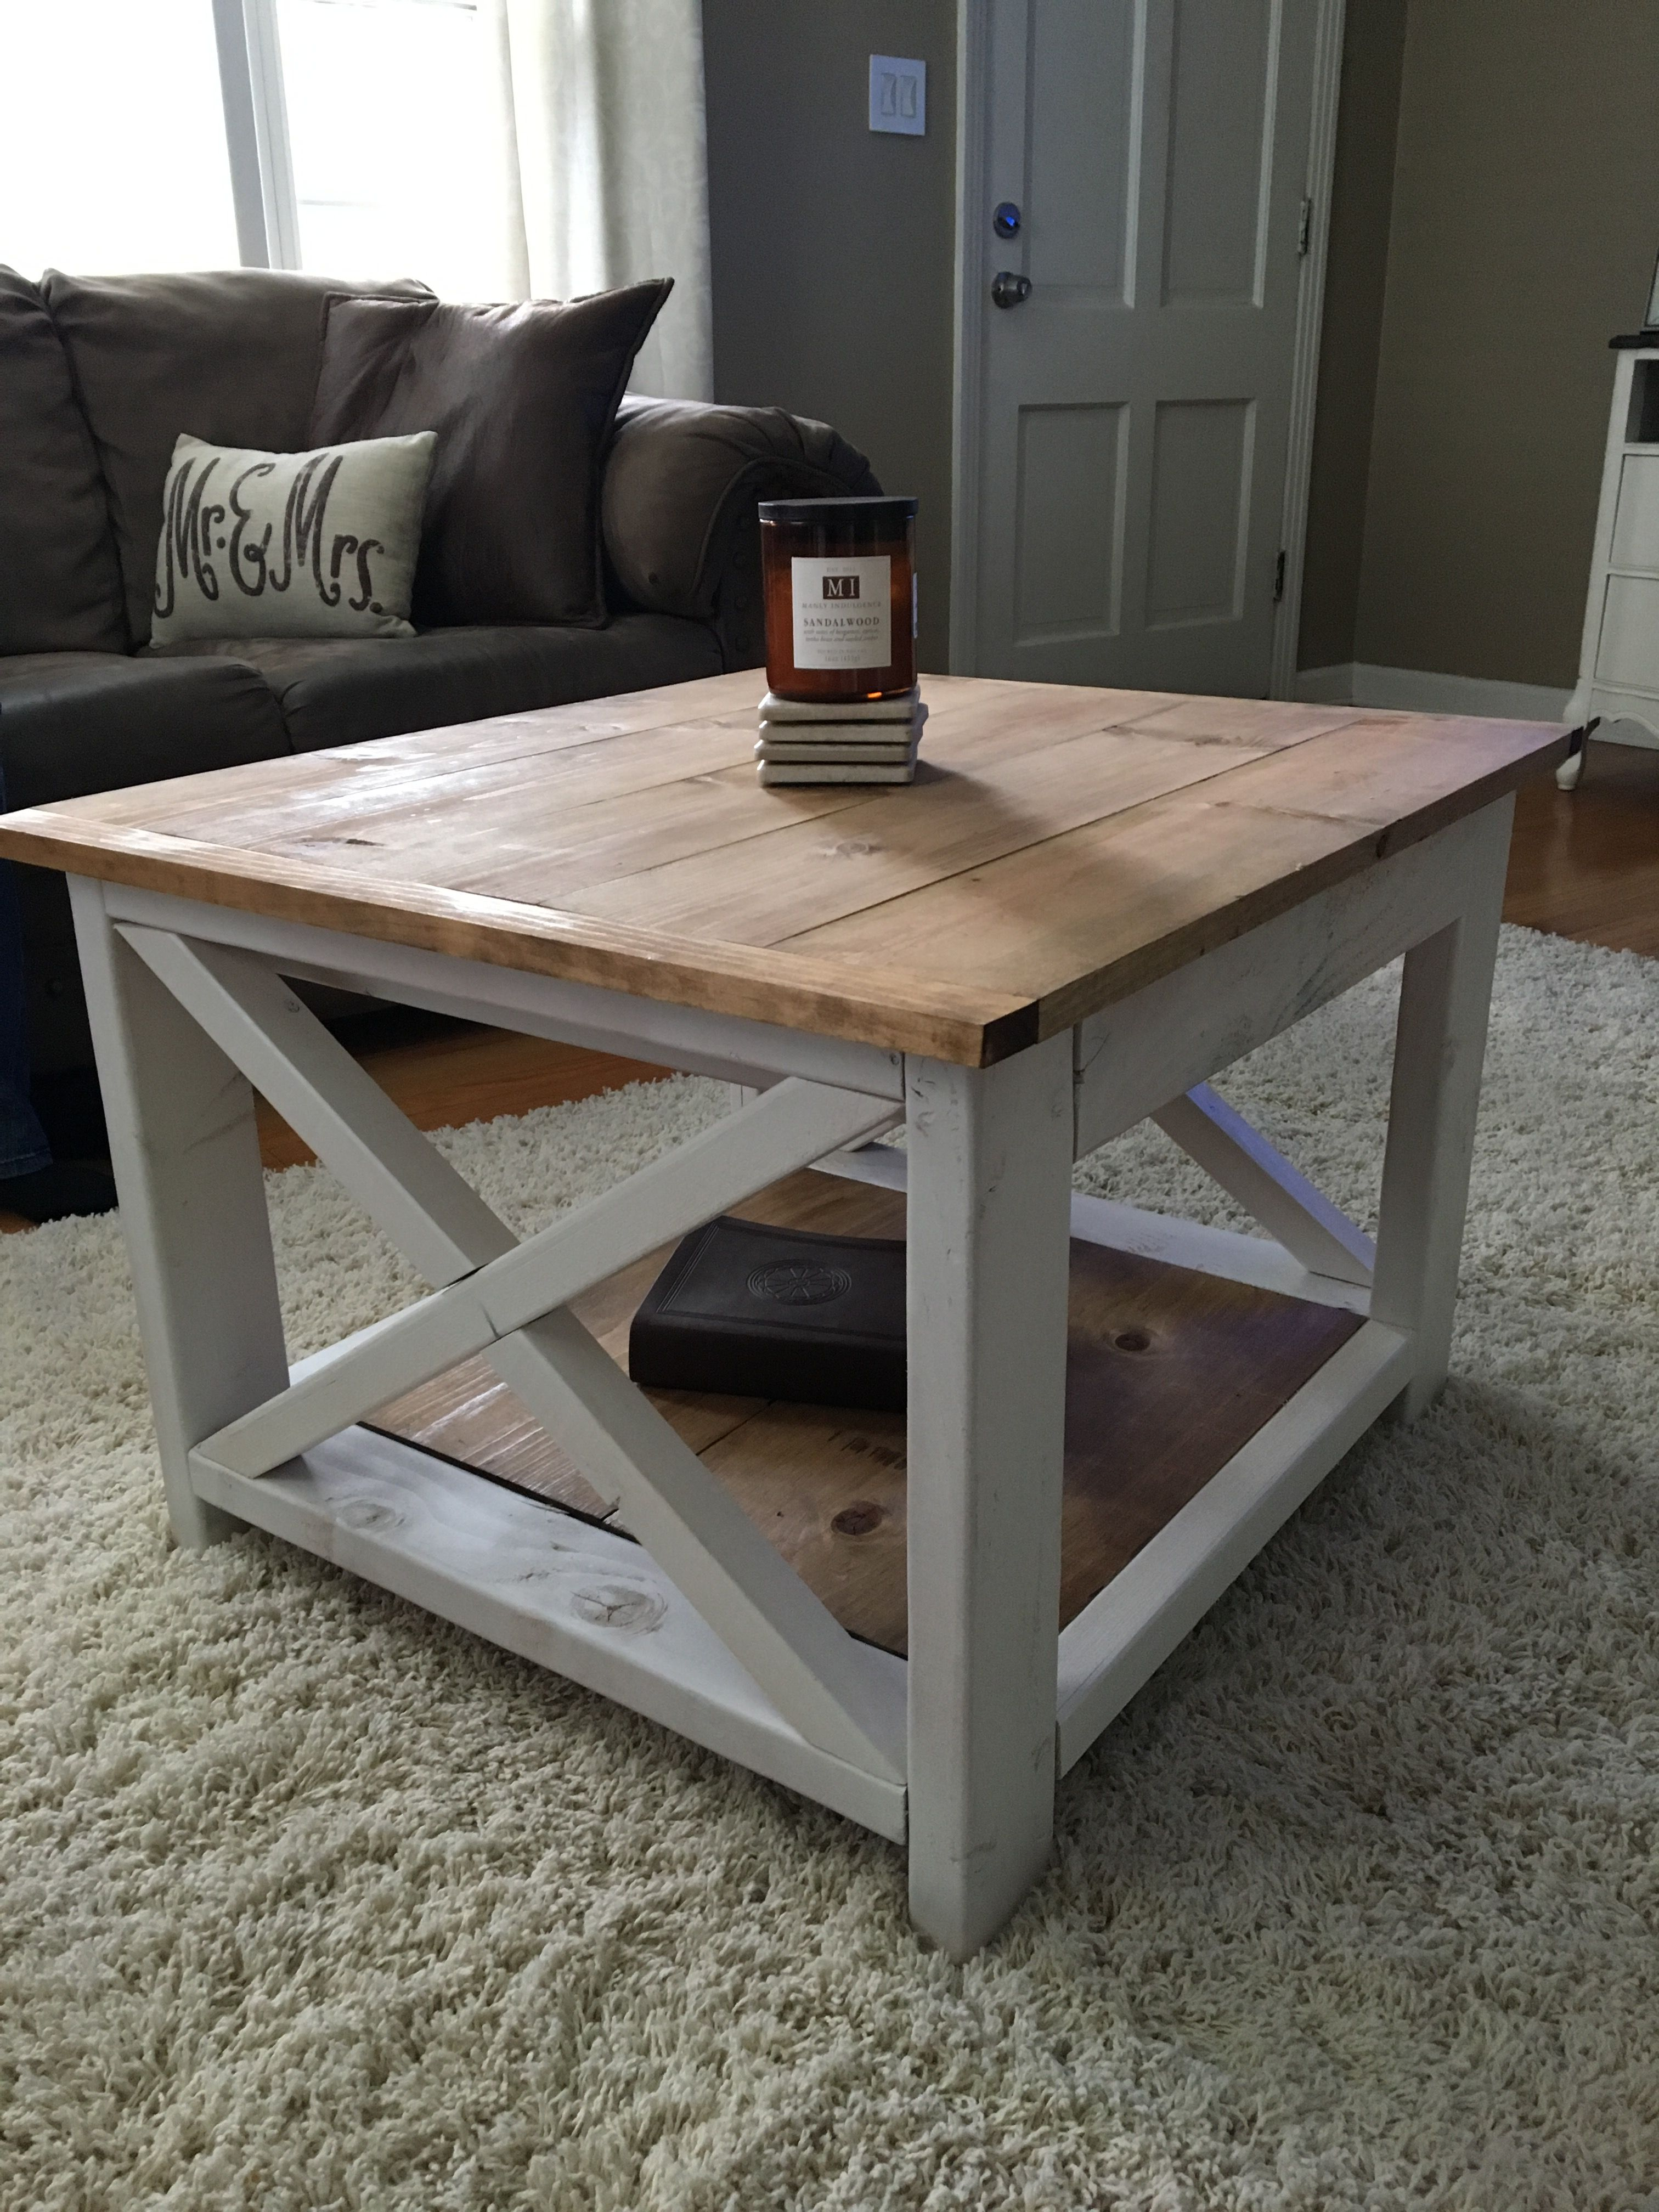 X Frame Coffee Table Made It For Less Than $100